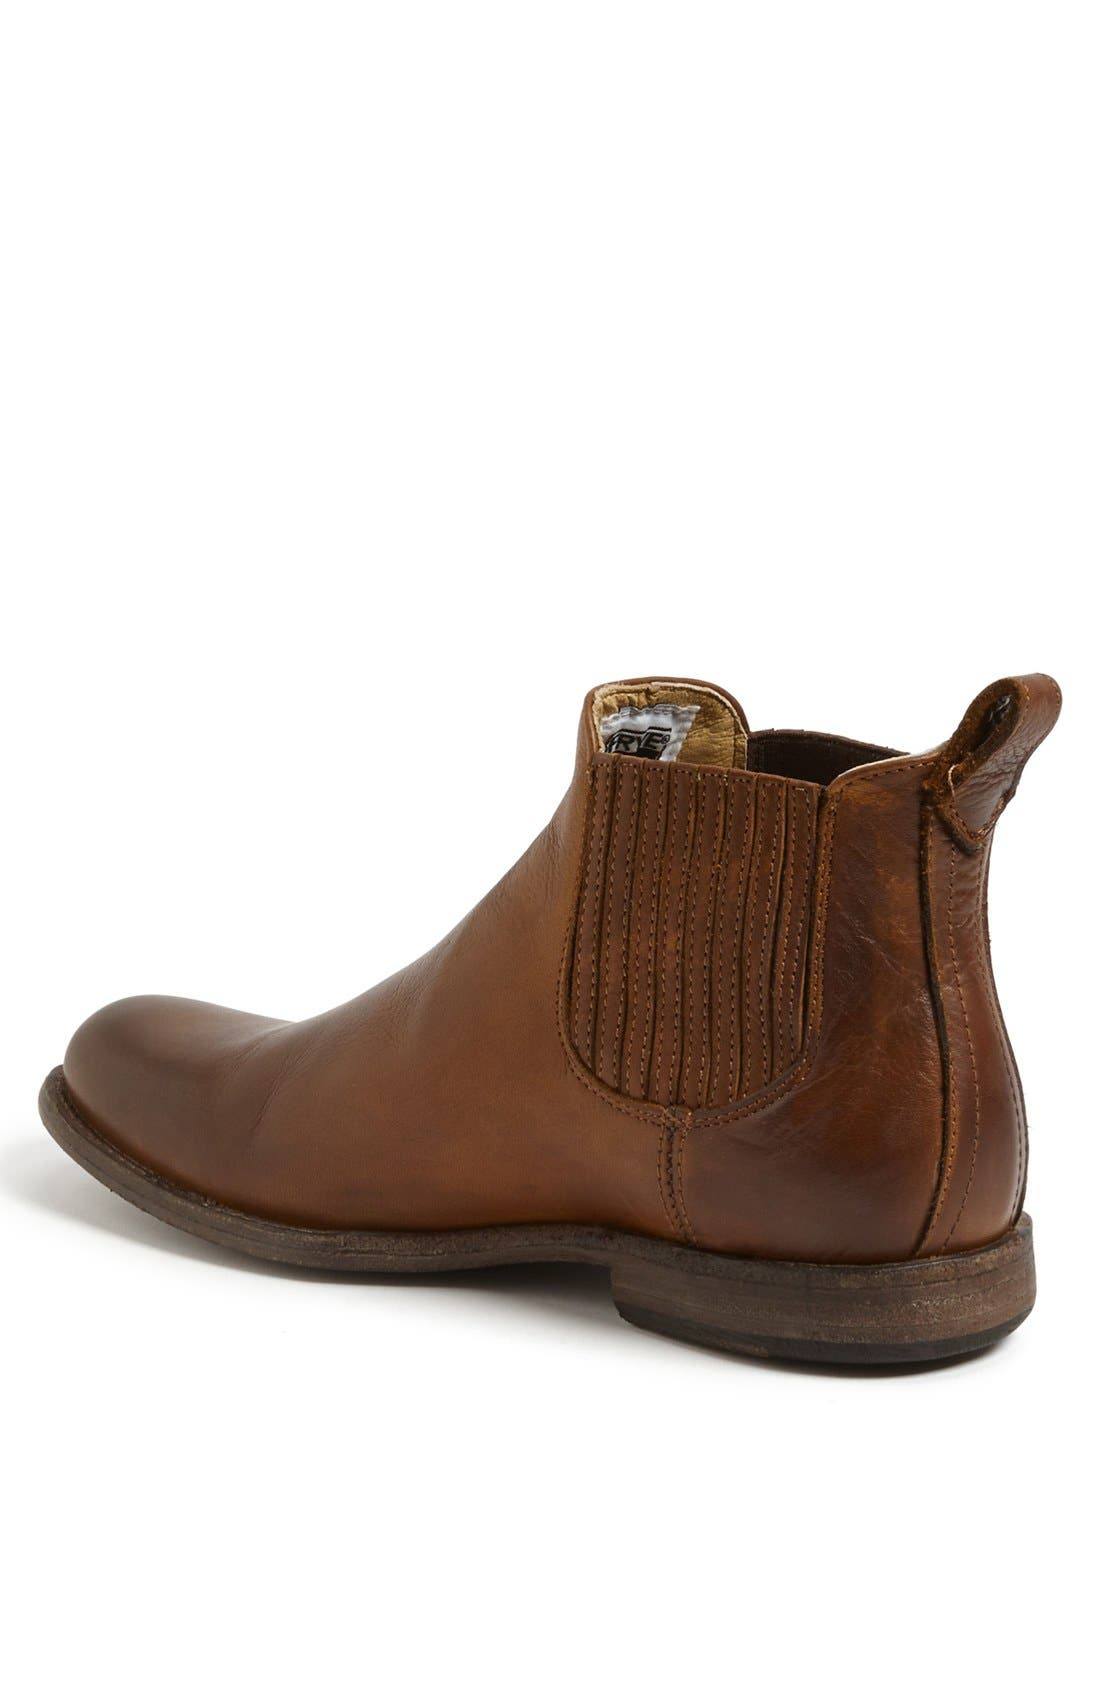 Alternate Image 2  - Frye 'Phillip' Chelsea Boot